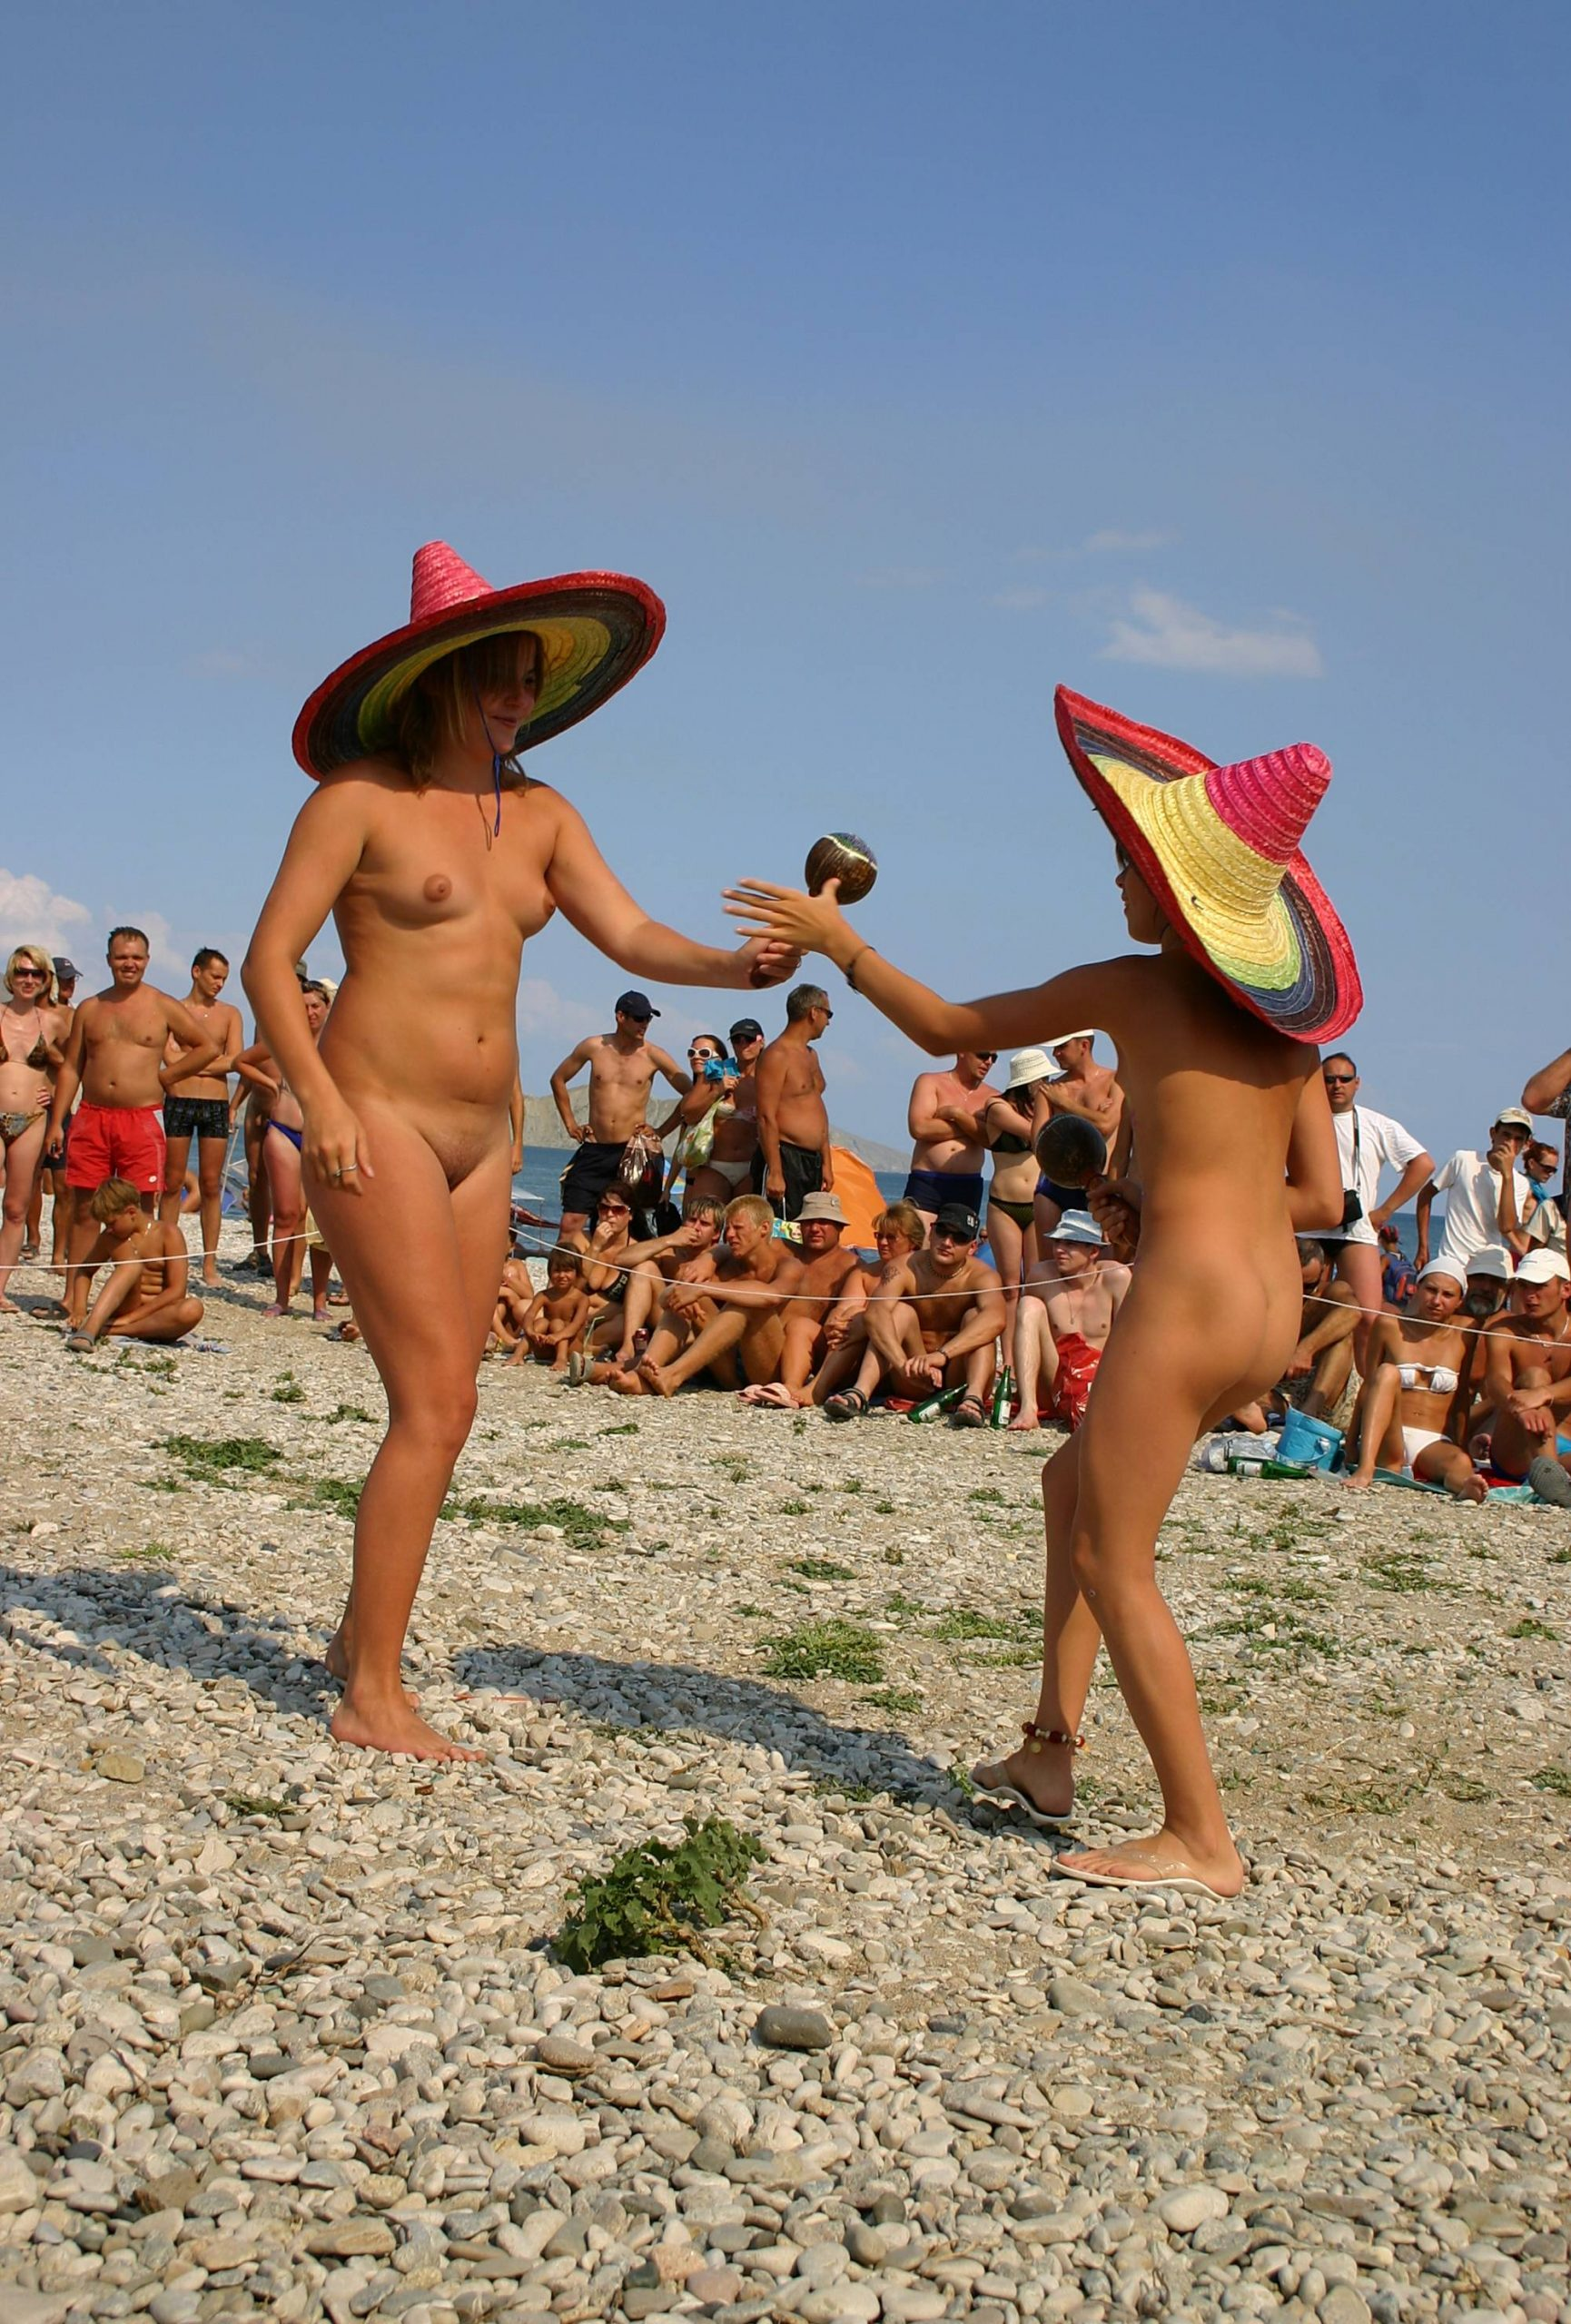 Purenudism Images-Costume Hat Day Dance - 1